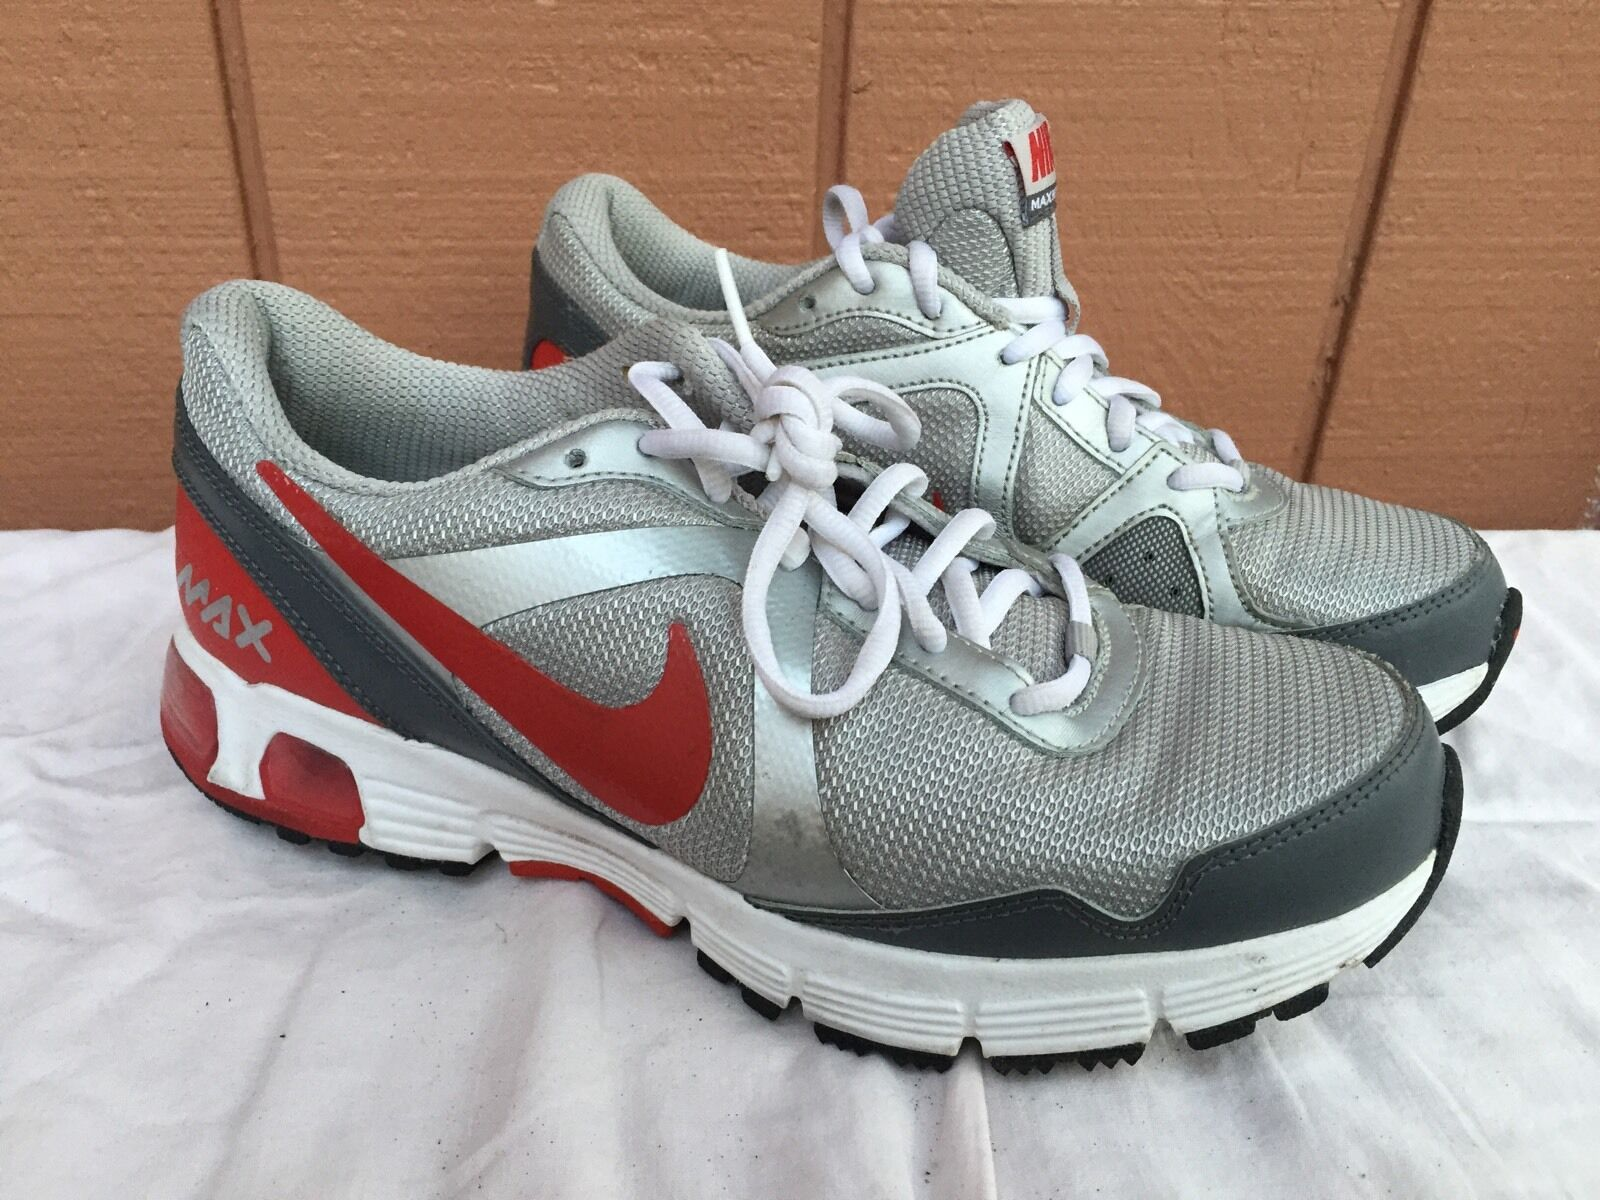 NIKE AIR MAX RUN LITE+ MENS SHOES/SNEAKERS/TRAINERS/RUNNERS US SZ 8